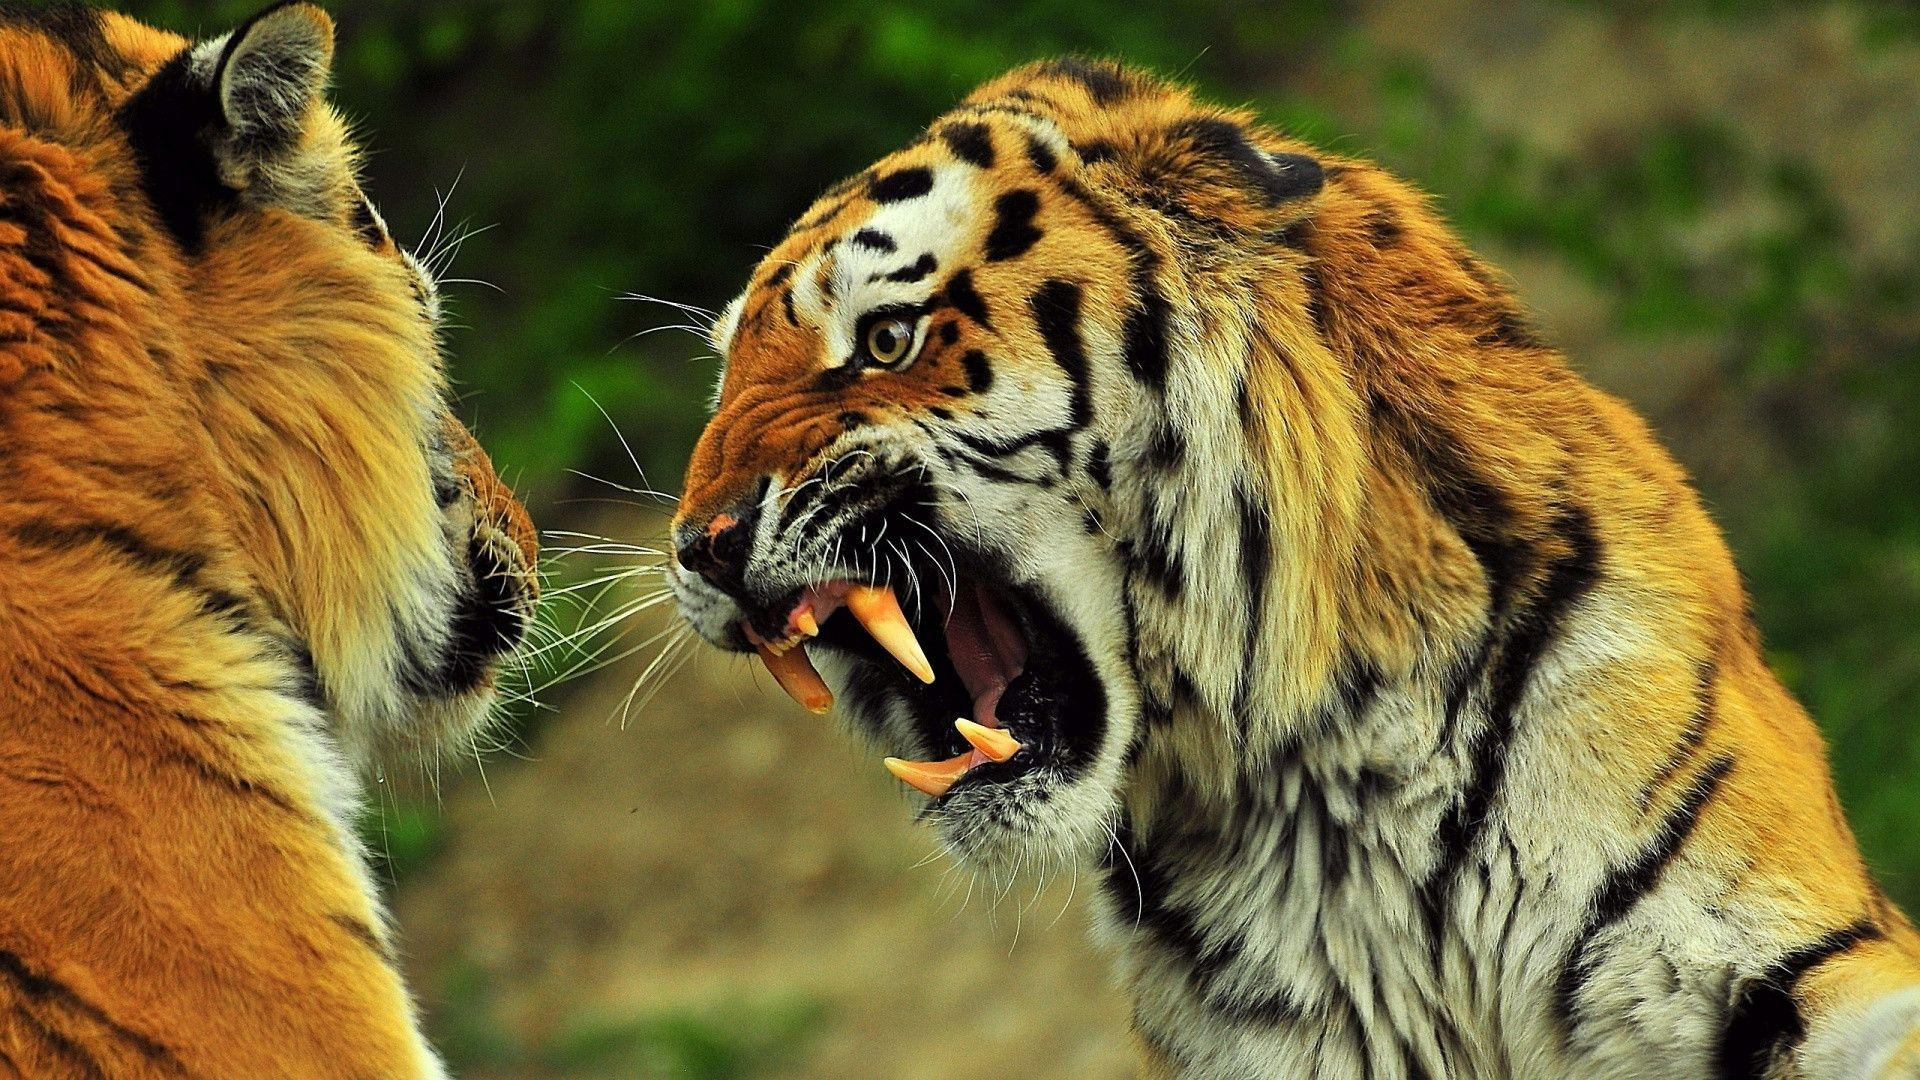 Angry Tiger wallpaper - 845572